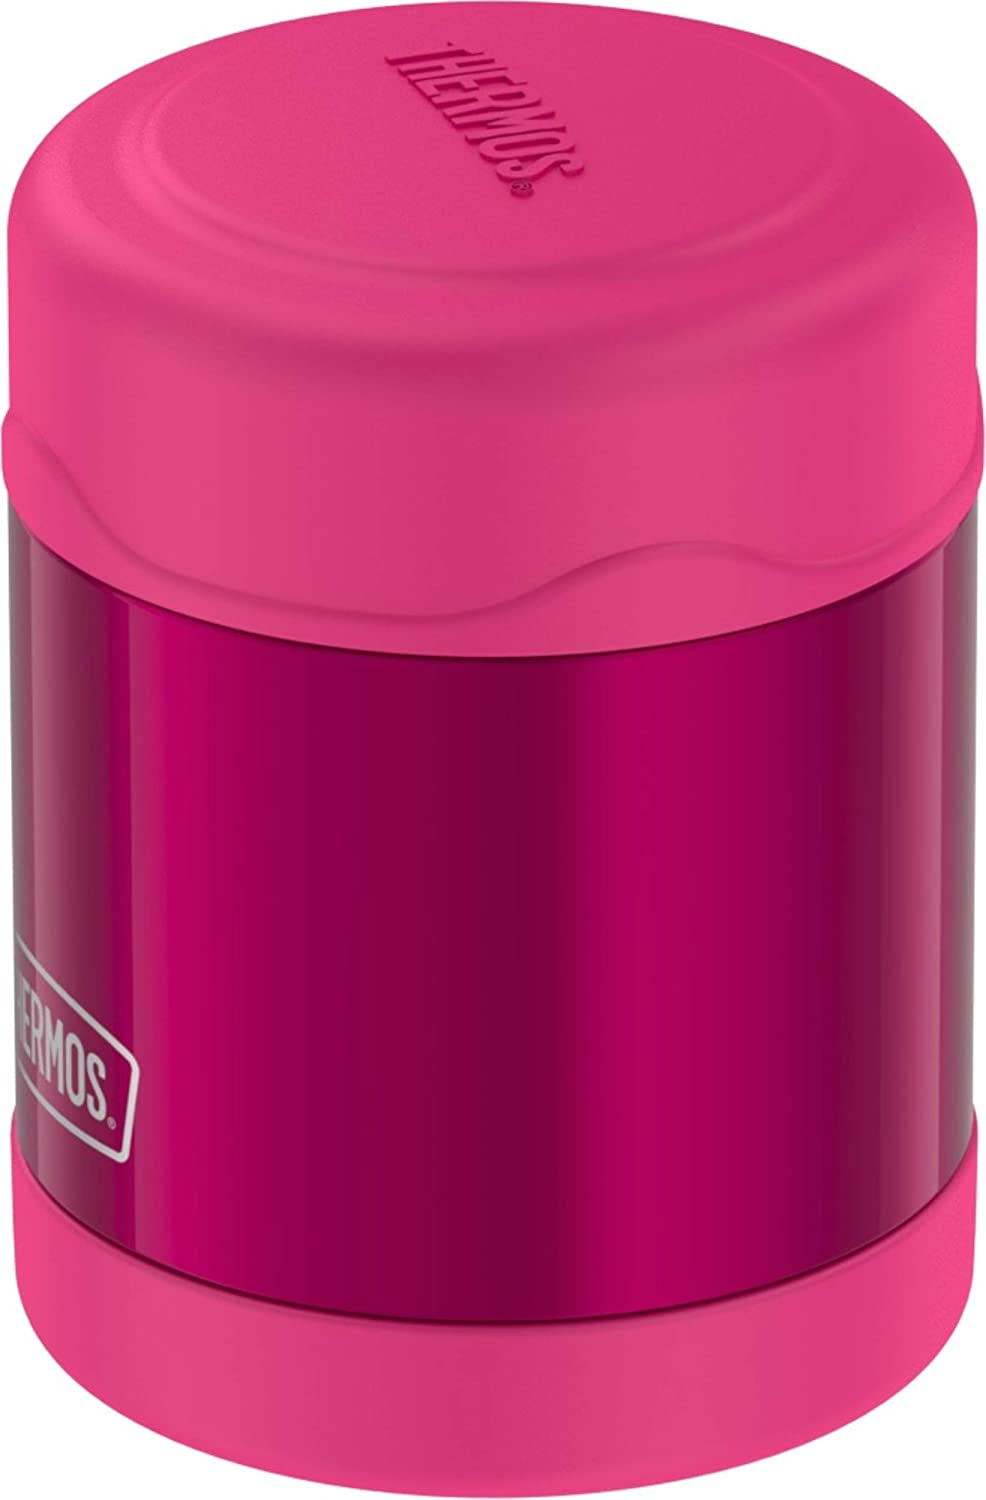 Best Insulated Lunch Box For Hot Food